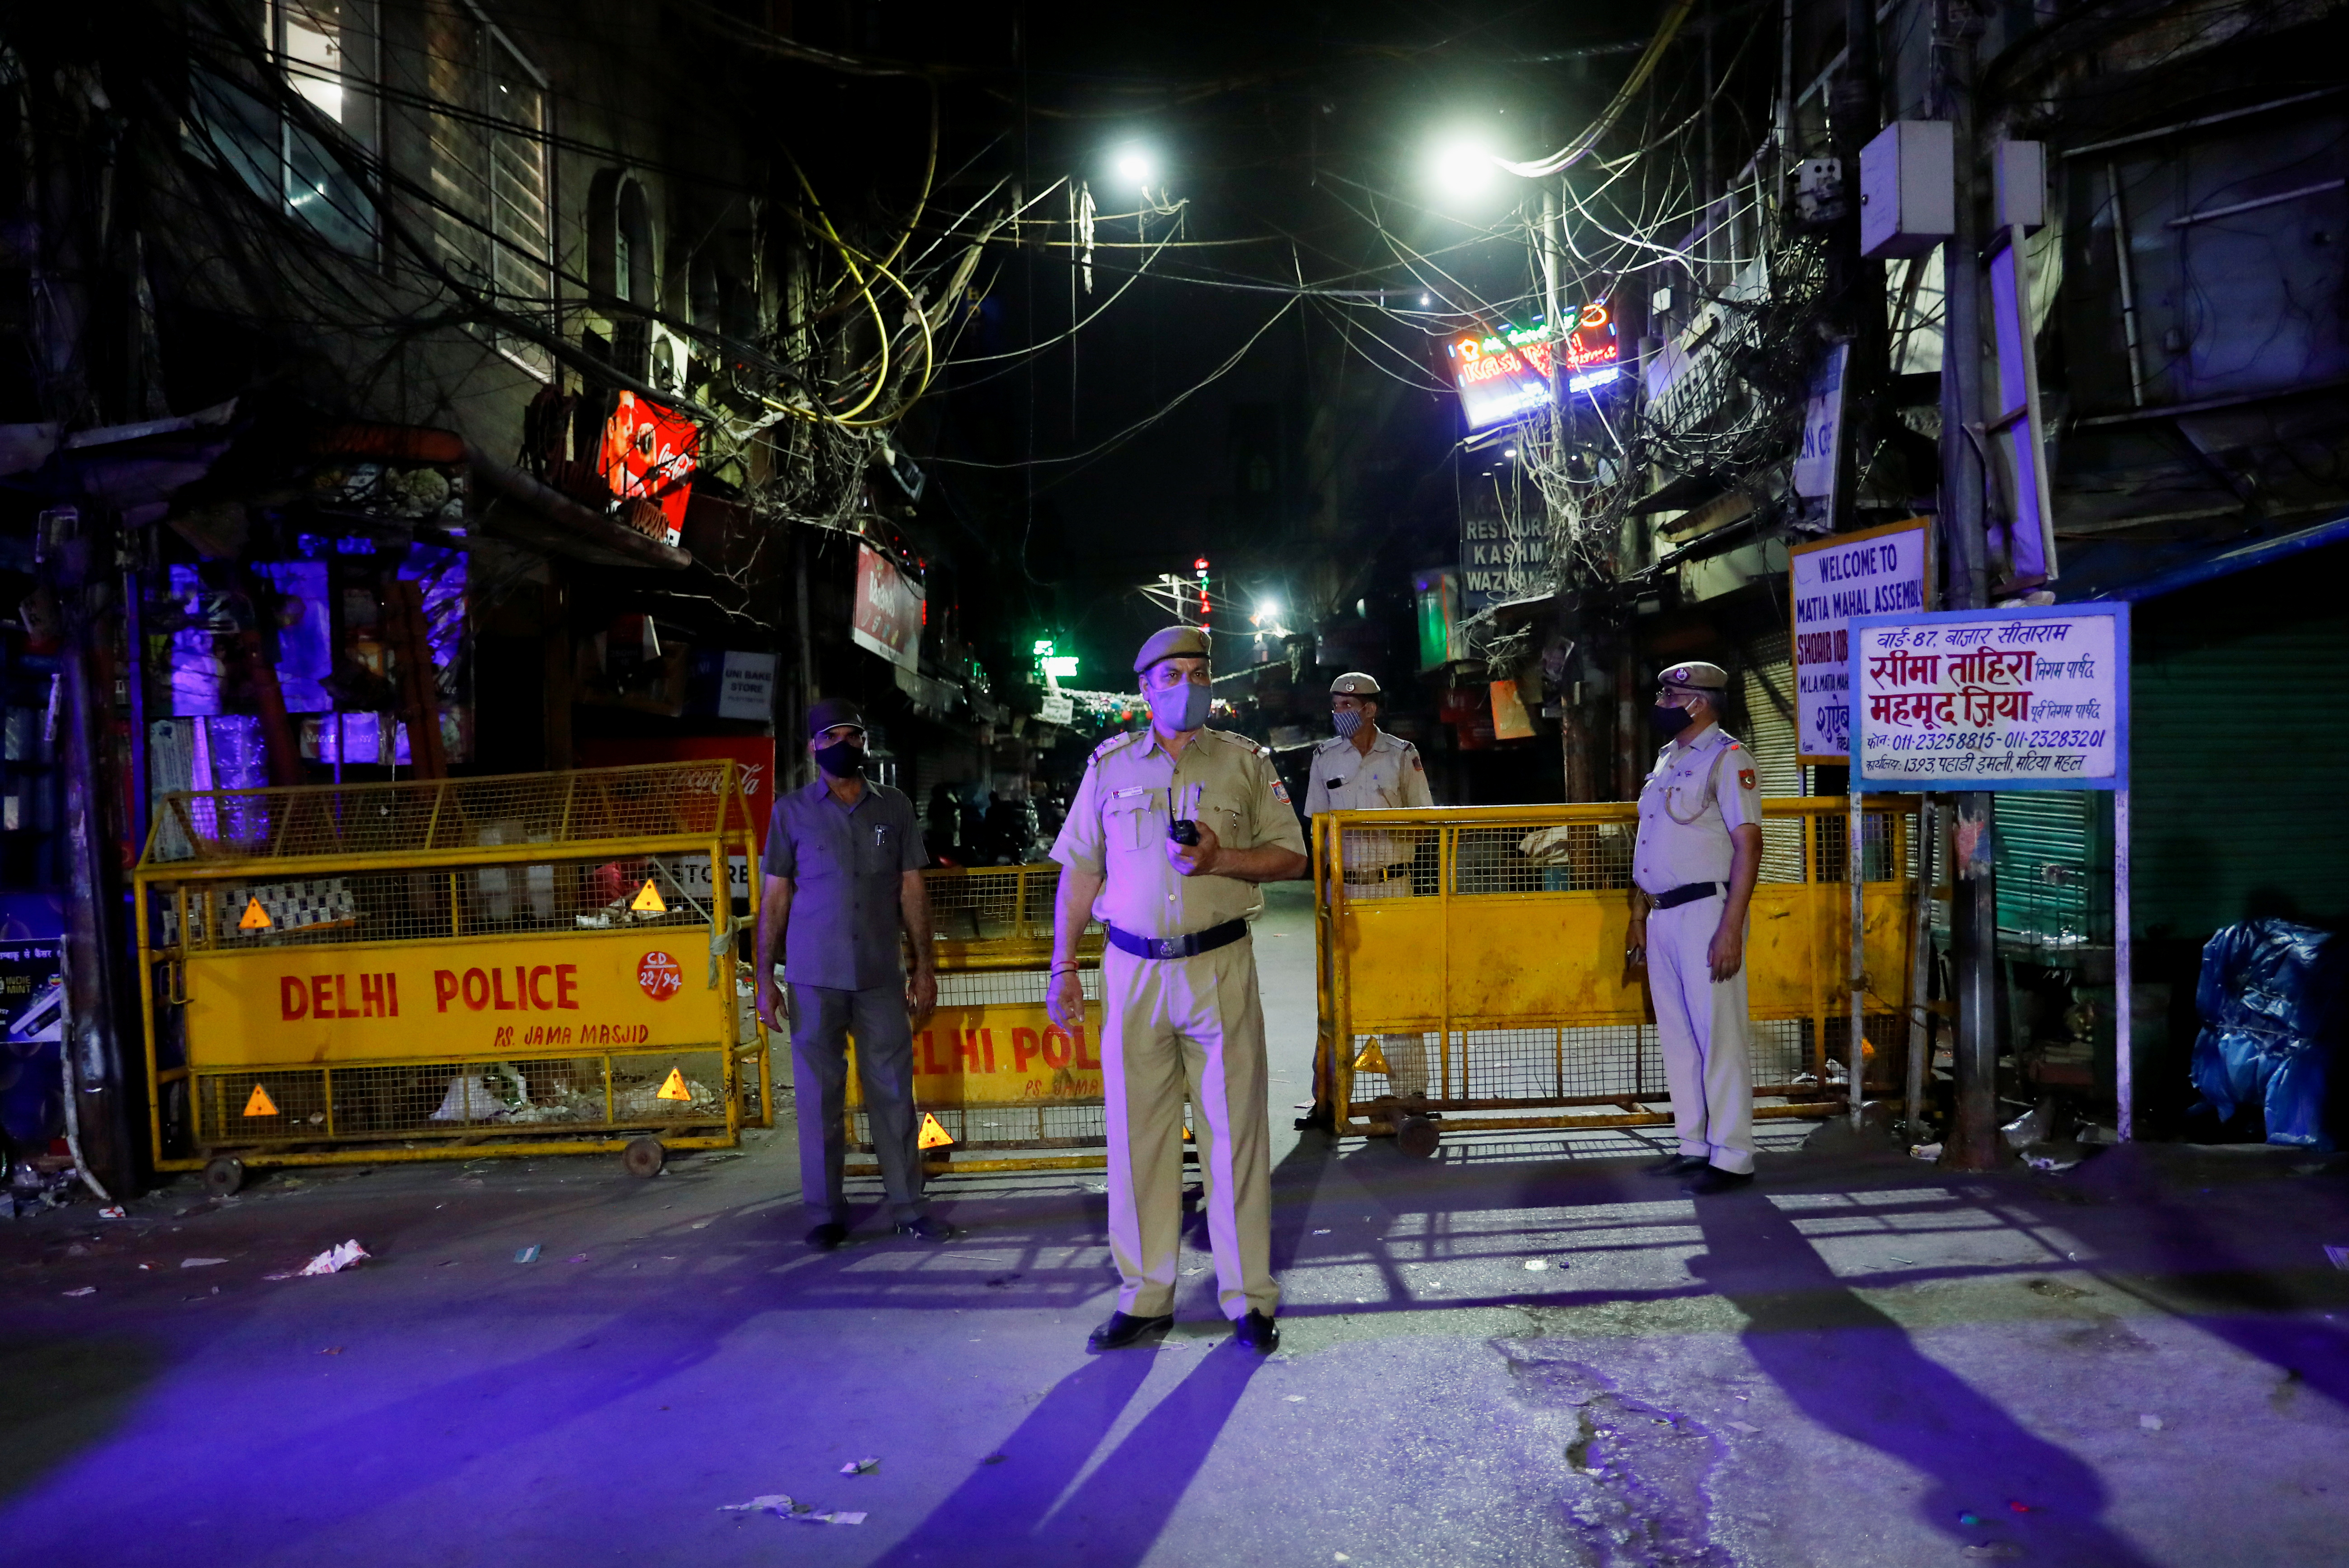 Police officers stand guard on a deserted street during a curfew to limit the spread of the coronavirus disease (COVID-19), in New Delhi, April 6, 2021. REUTERS/Adnan Abidi